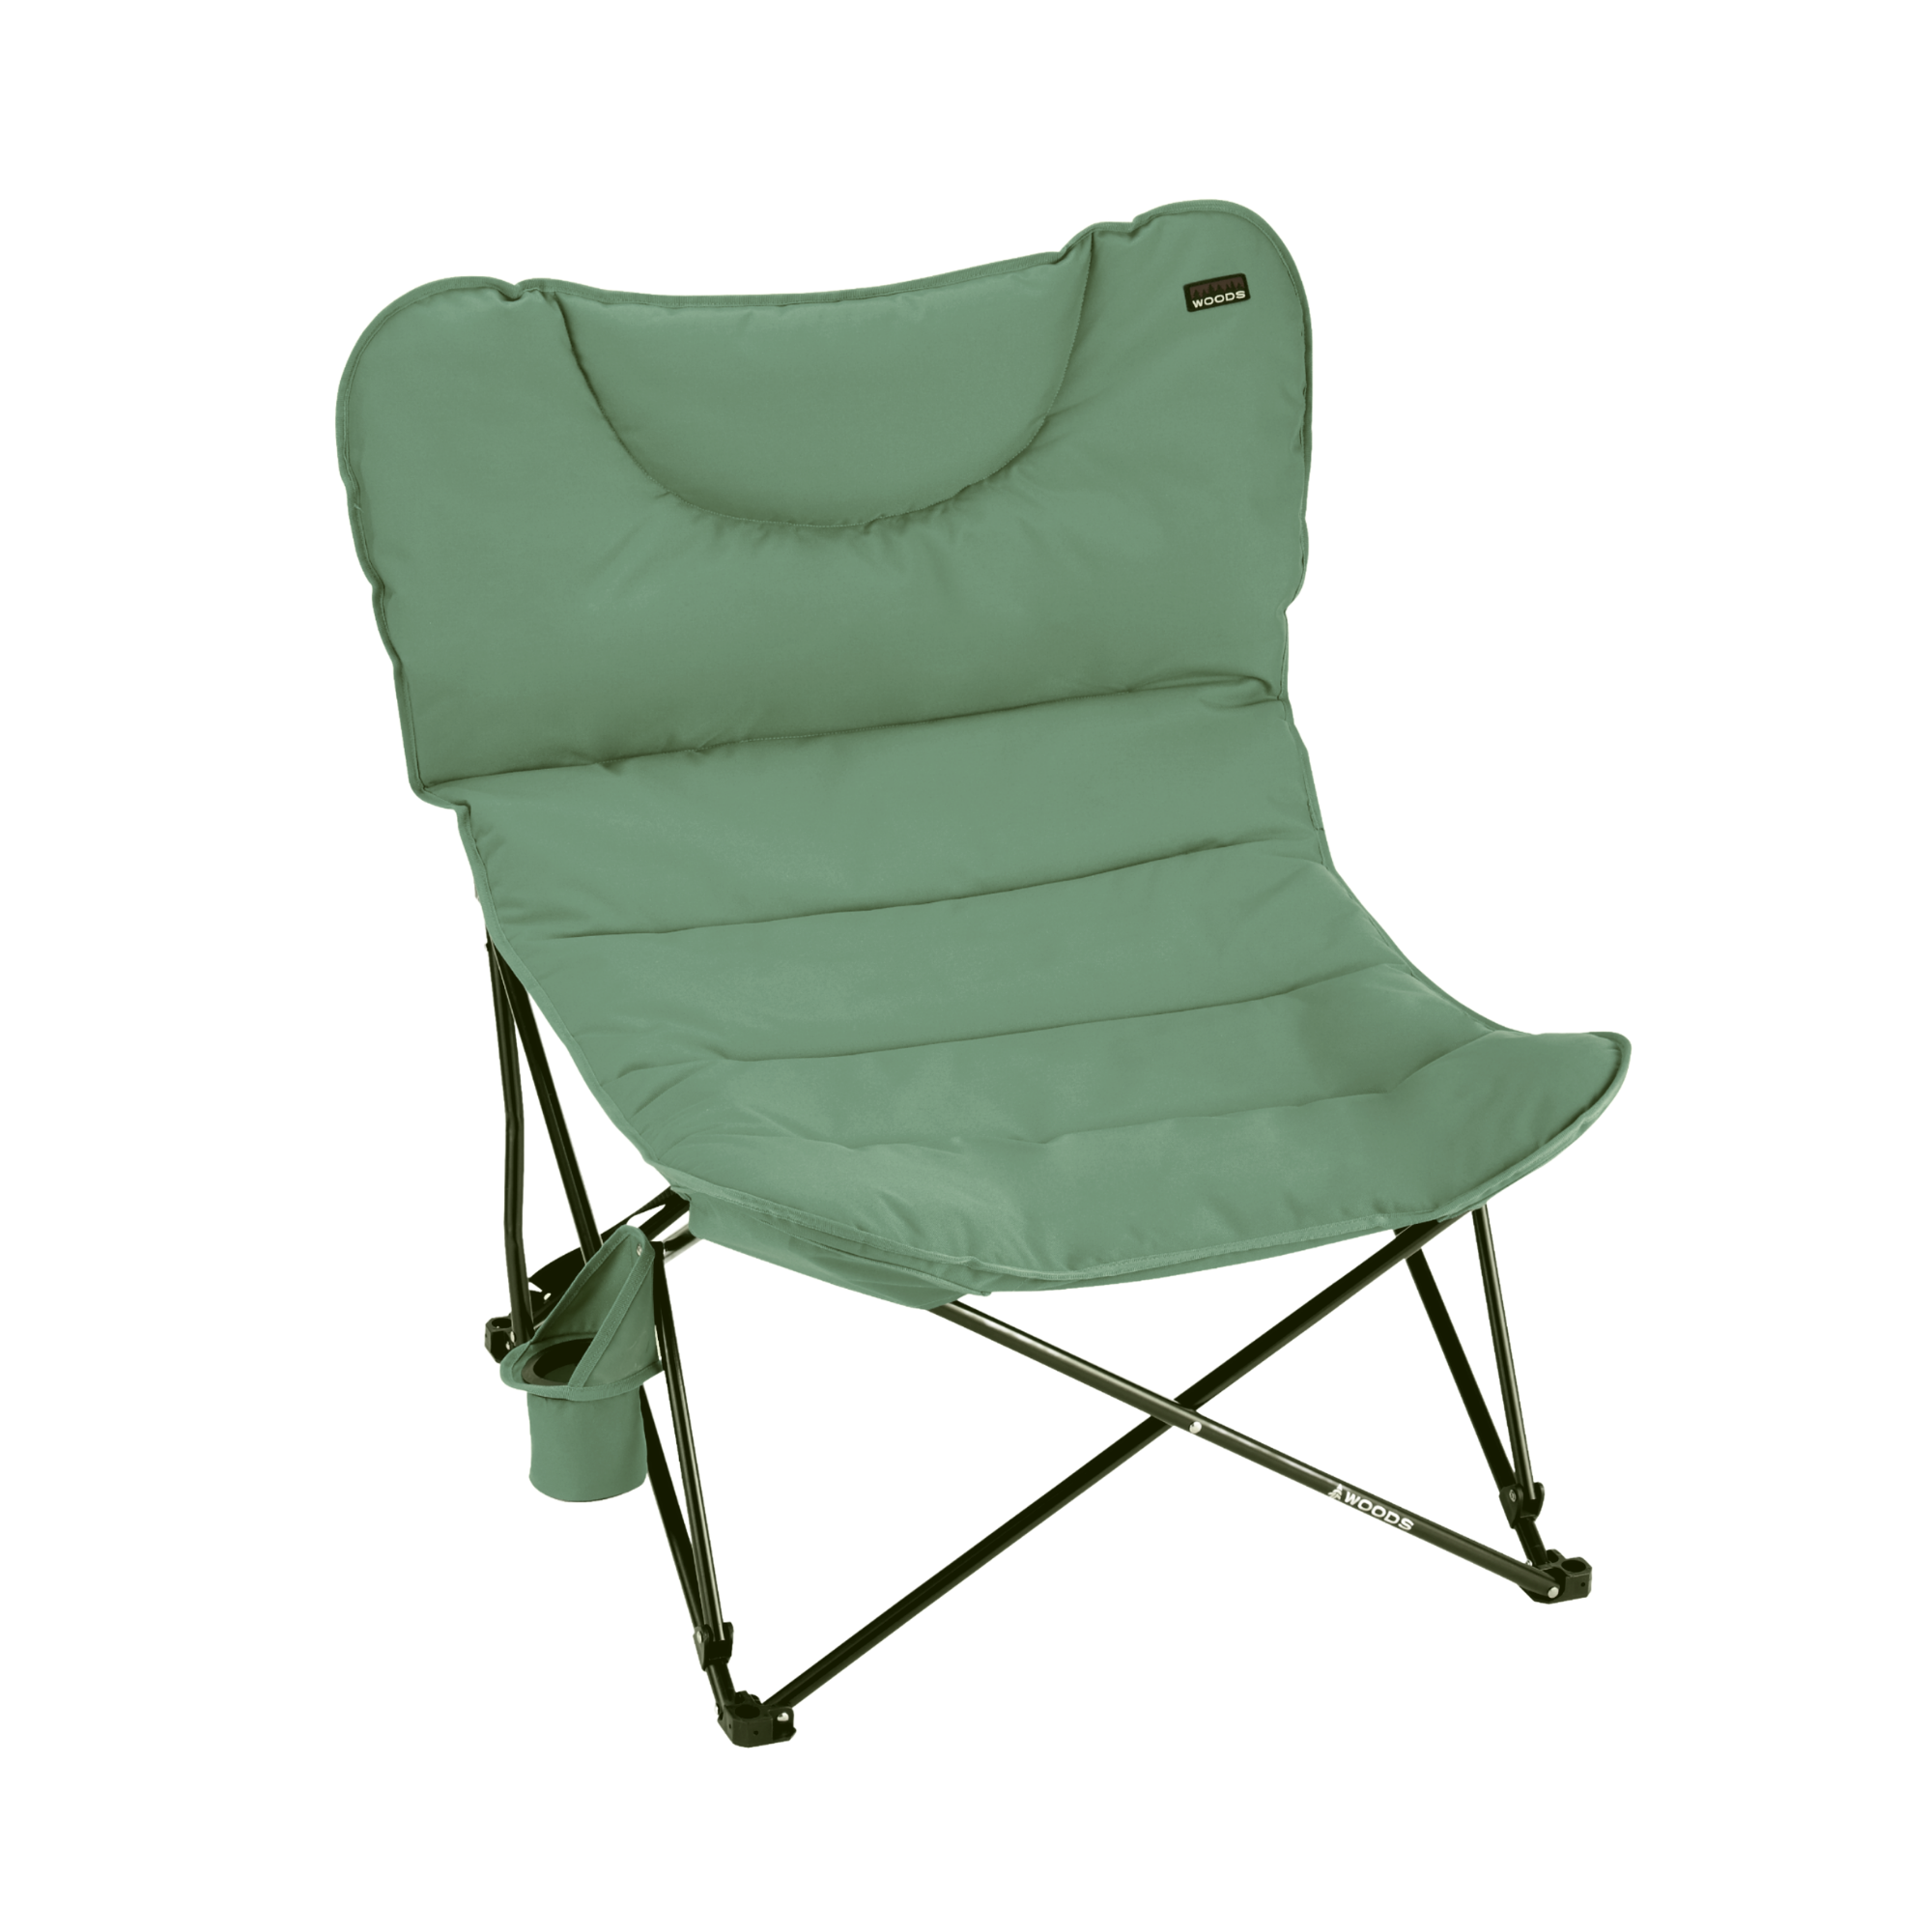 The Best Portable Summer Chairs — For Roof To Park ...